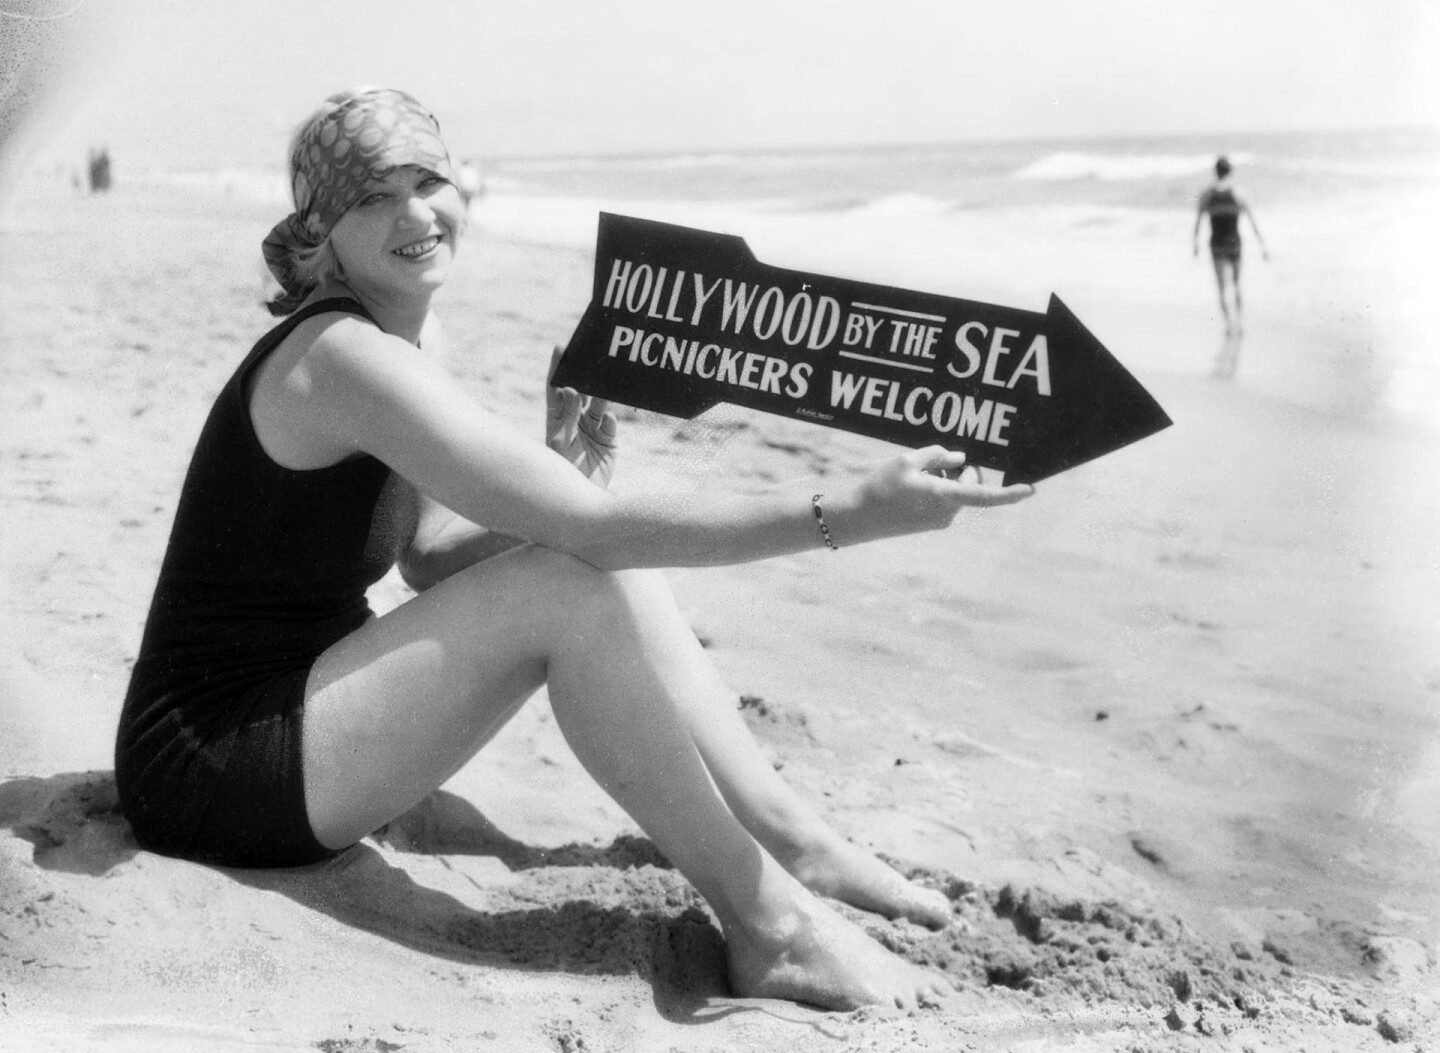 Picnickers and campers were welcome on Hollywood-by-the-Sea's beach. 1927 photo courtesy of the USC Libraries - Dick Whittington Photography Collection.